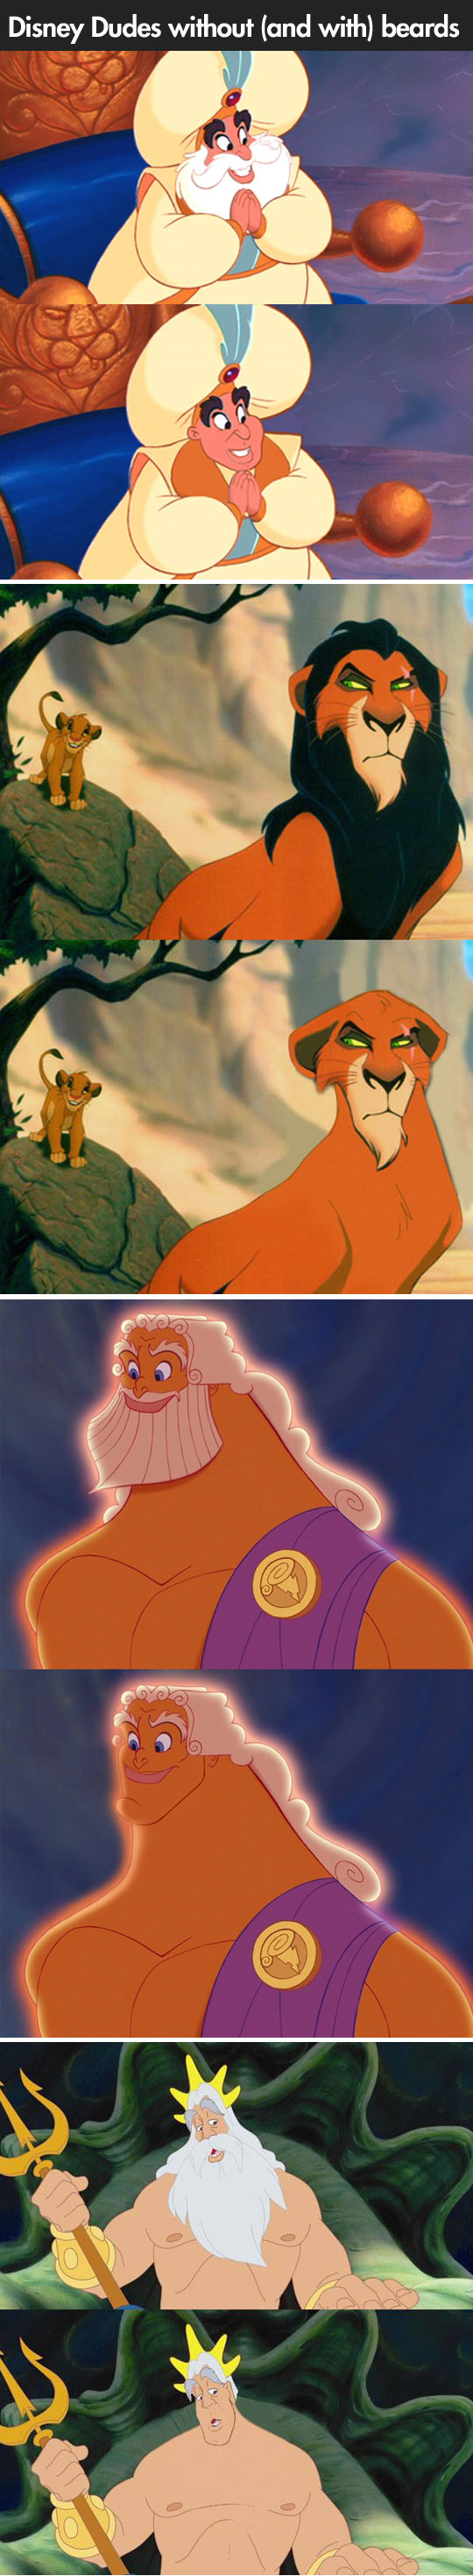 Disney characters without beards...